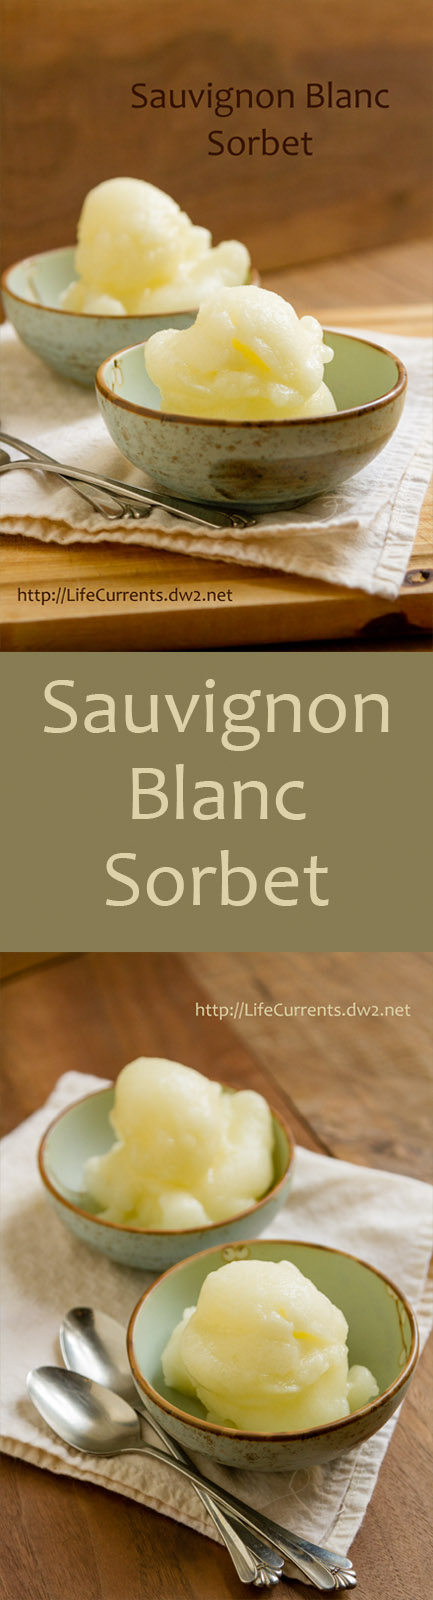 Long pin for Pinteerst for Sauvignon Blanc Sorbet Recipe